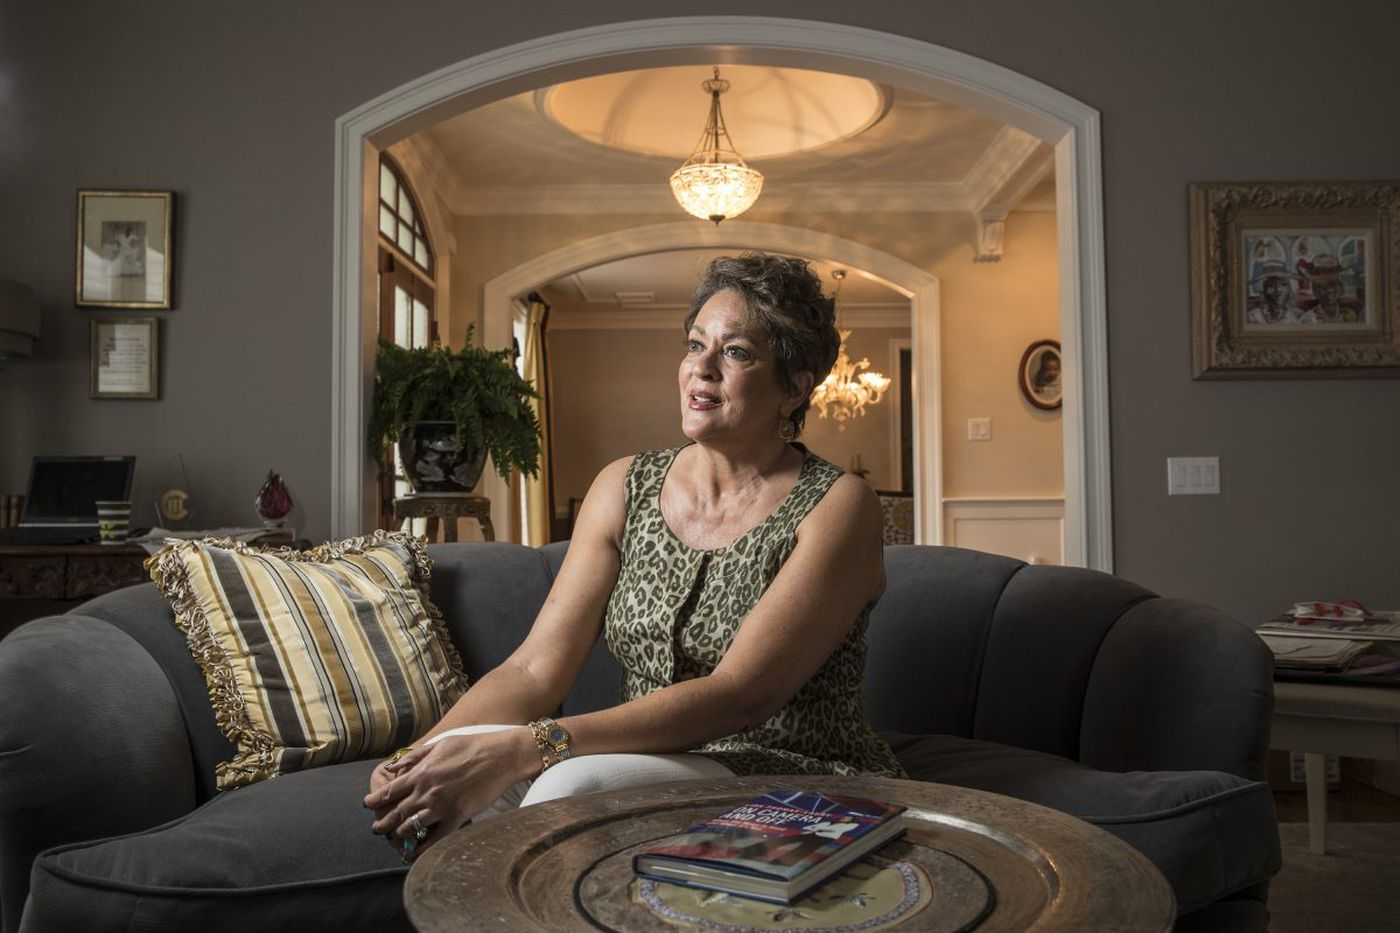 Lisa Thomas-Laury shares story of illness and recovery in new book